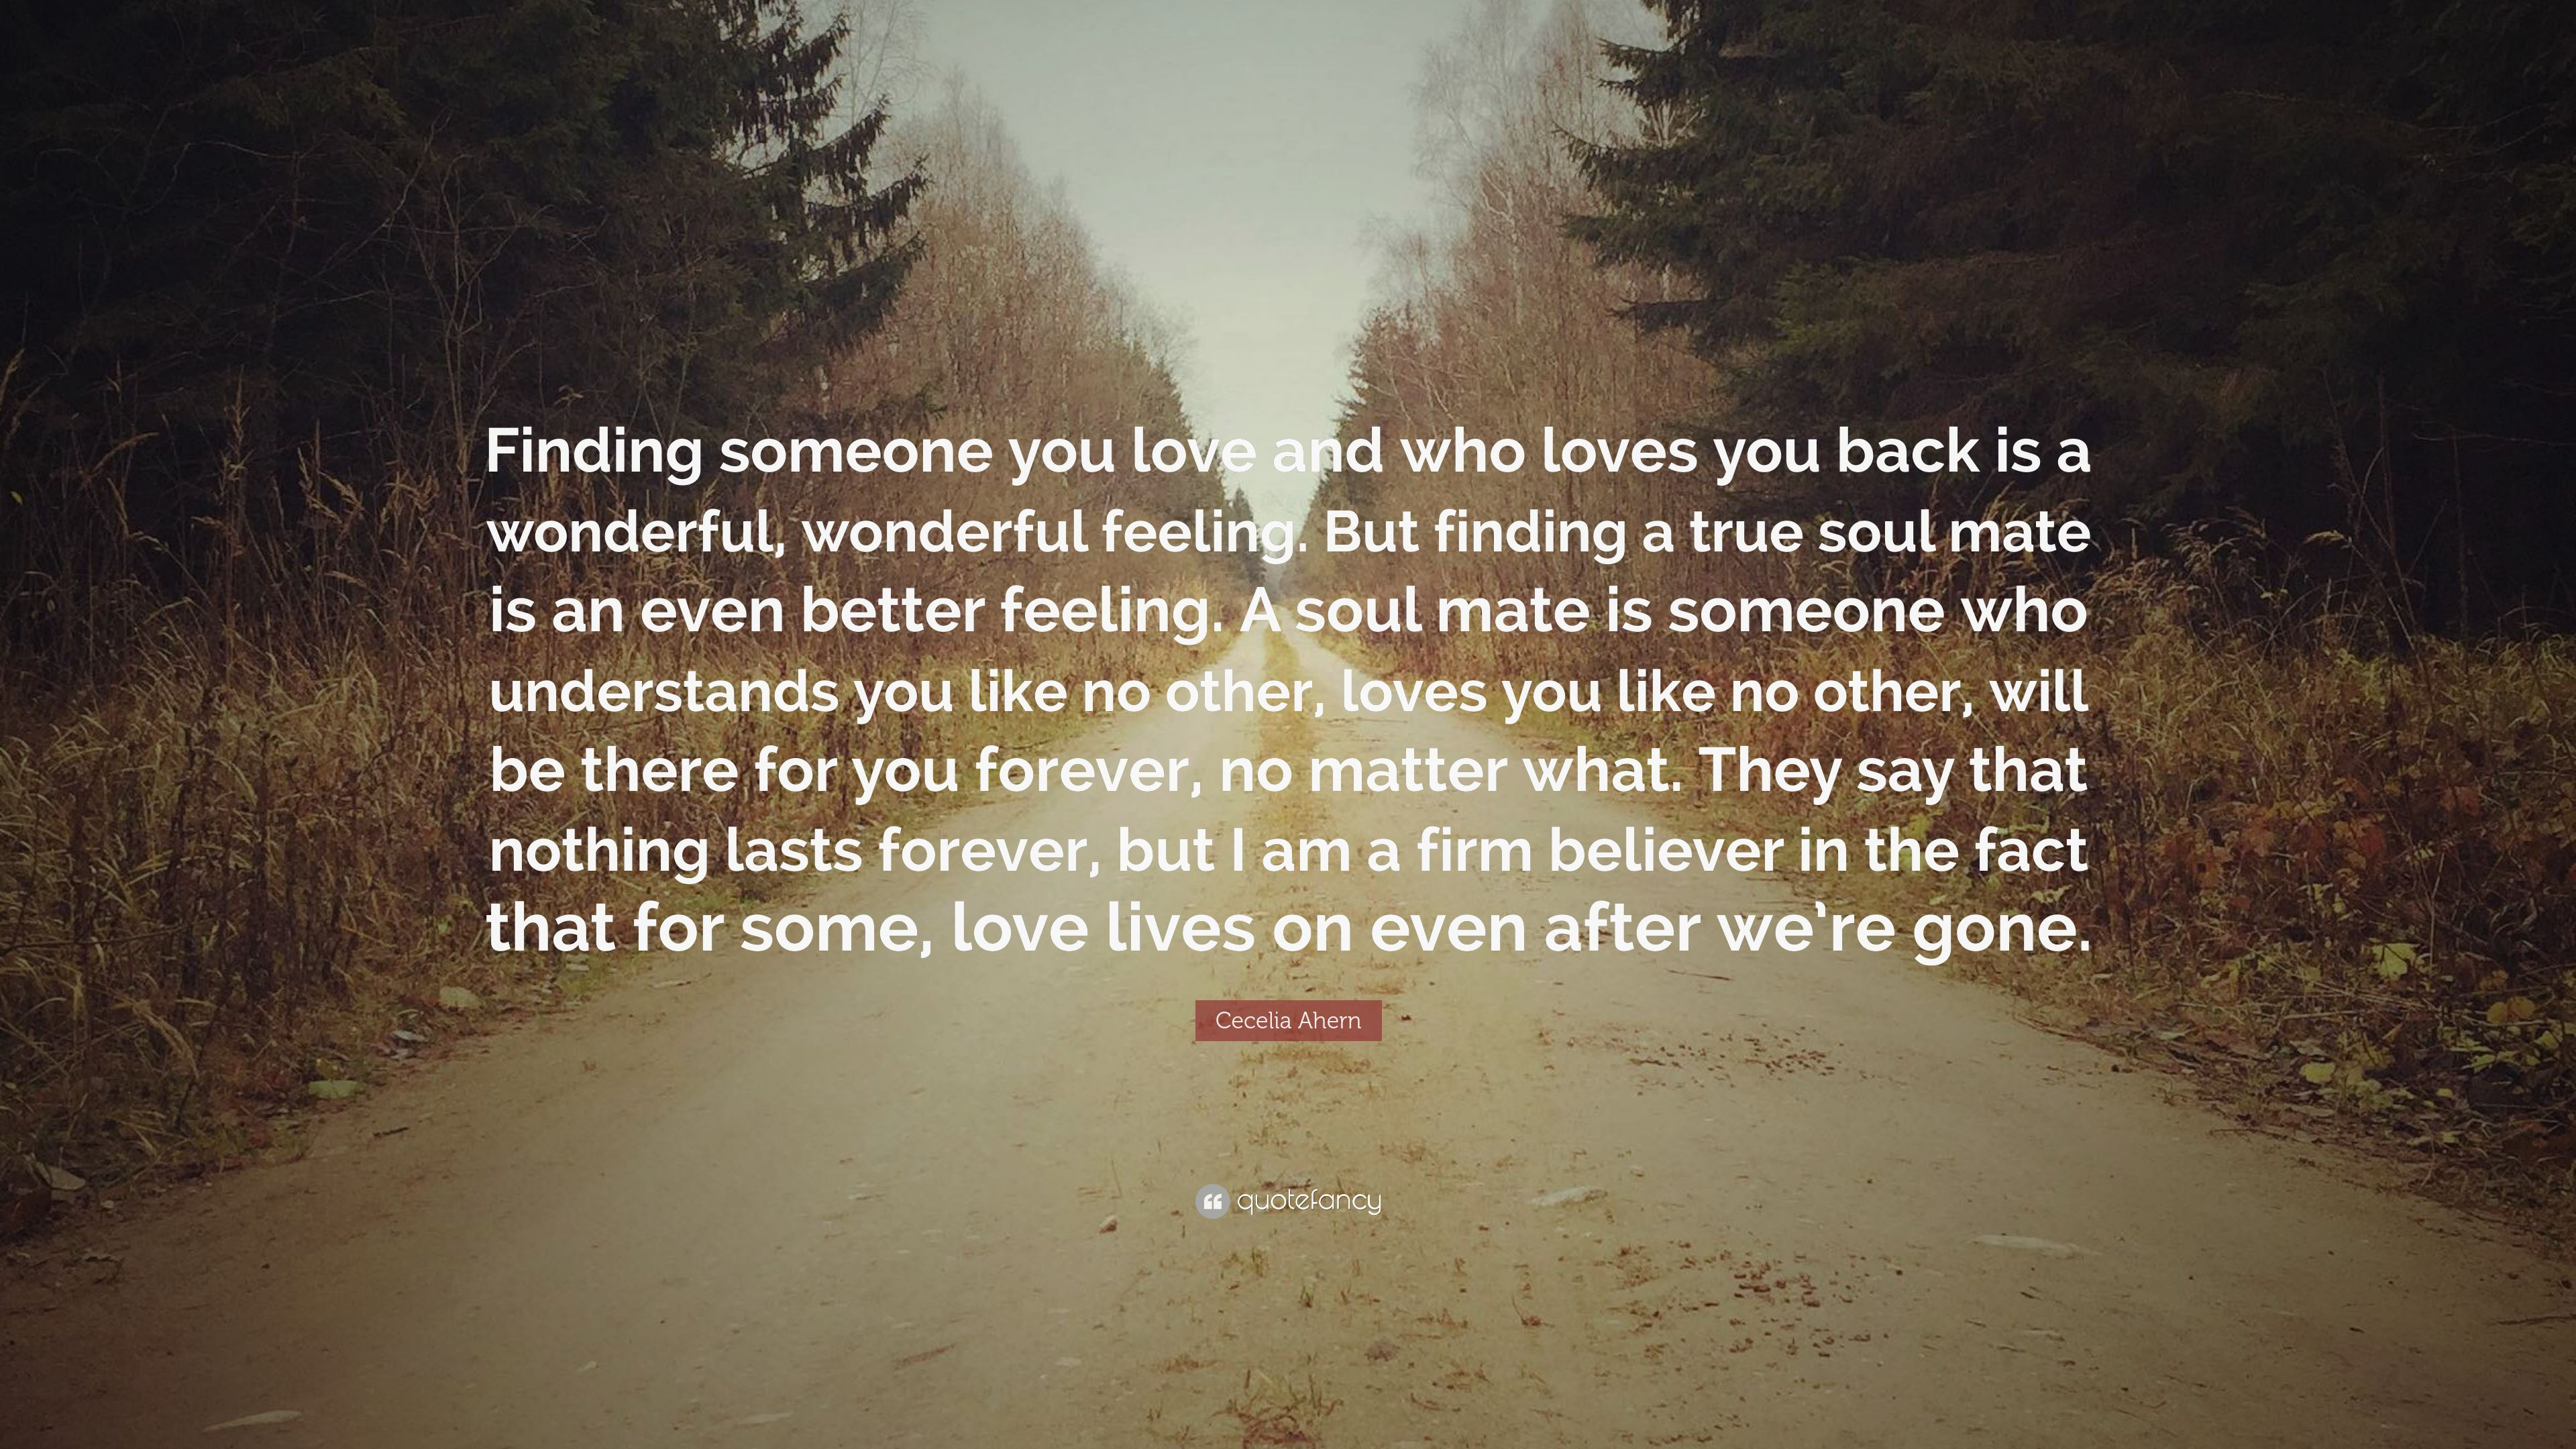 Cecelia Ahern Quote Finding Someone You Love And Who Loves You Back Is A Wonderful Wonderful